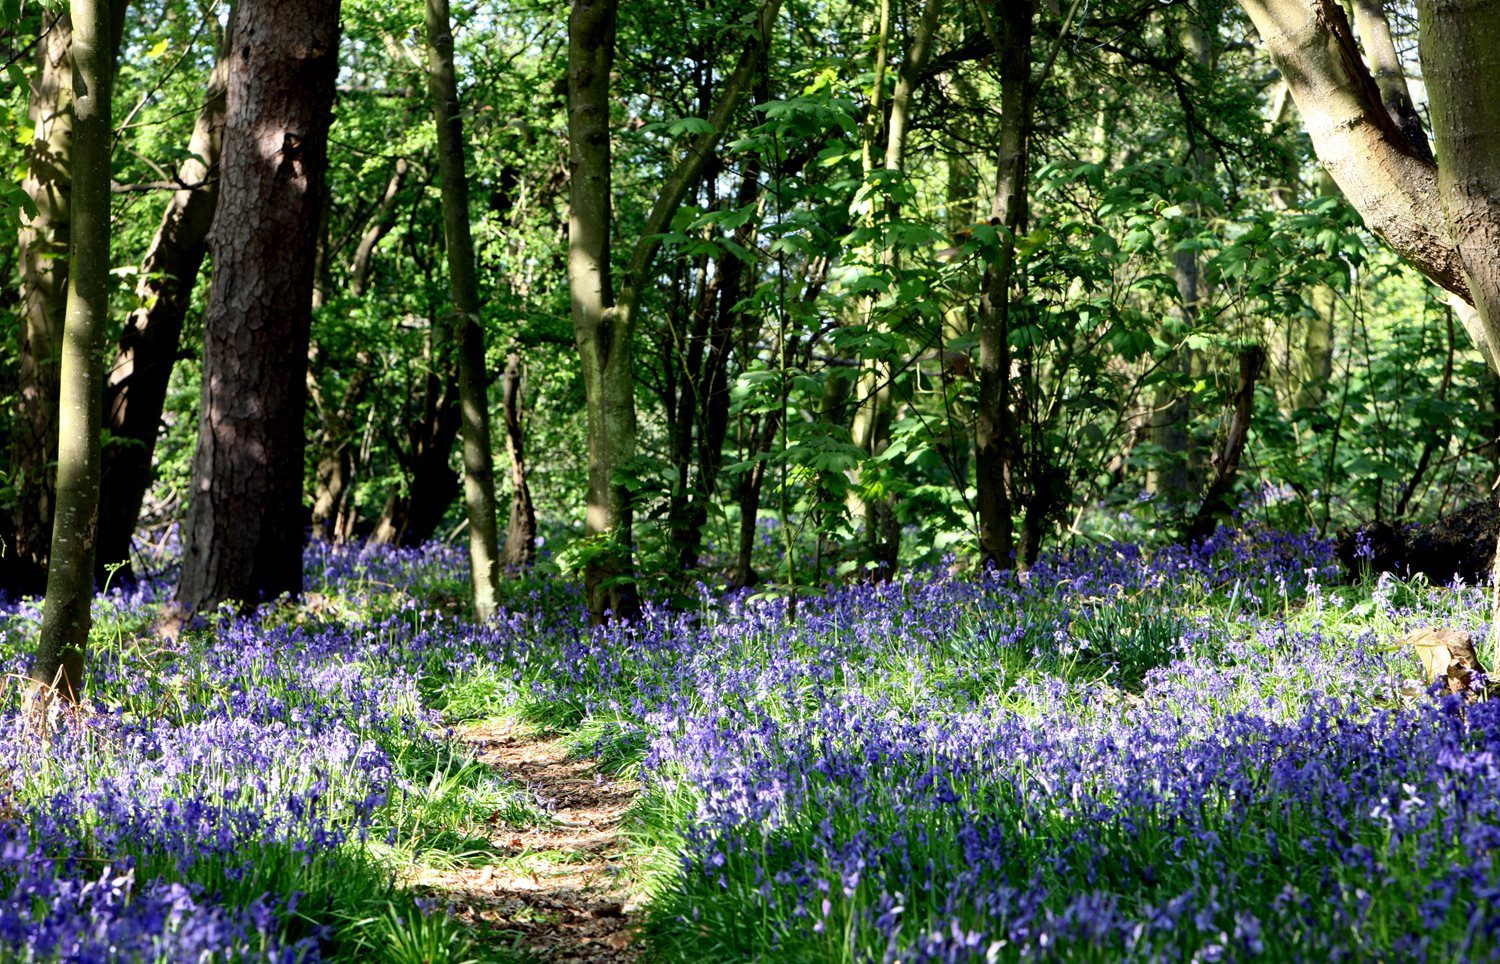 Our bluebell woods are a sight to behold in early May and are a popular walking spot for locals and residents alike